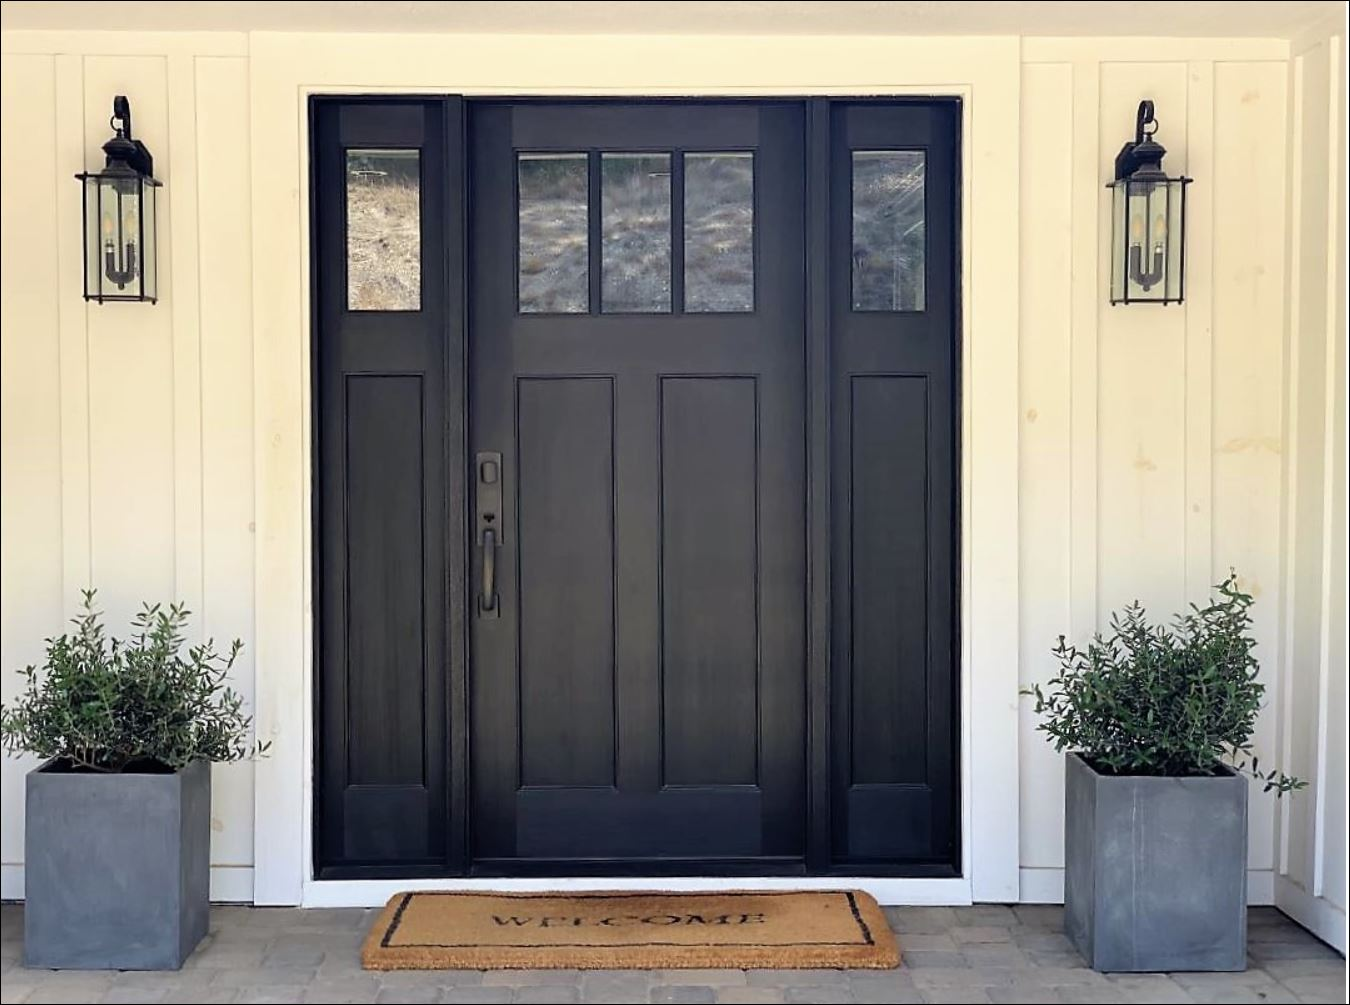 mid-century ranch house exterior home remodel and improvements drought-tolerant plants landscape pavers stone pea gravel black craftsman entry door privacy gate board and batten black and white